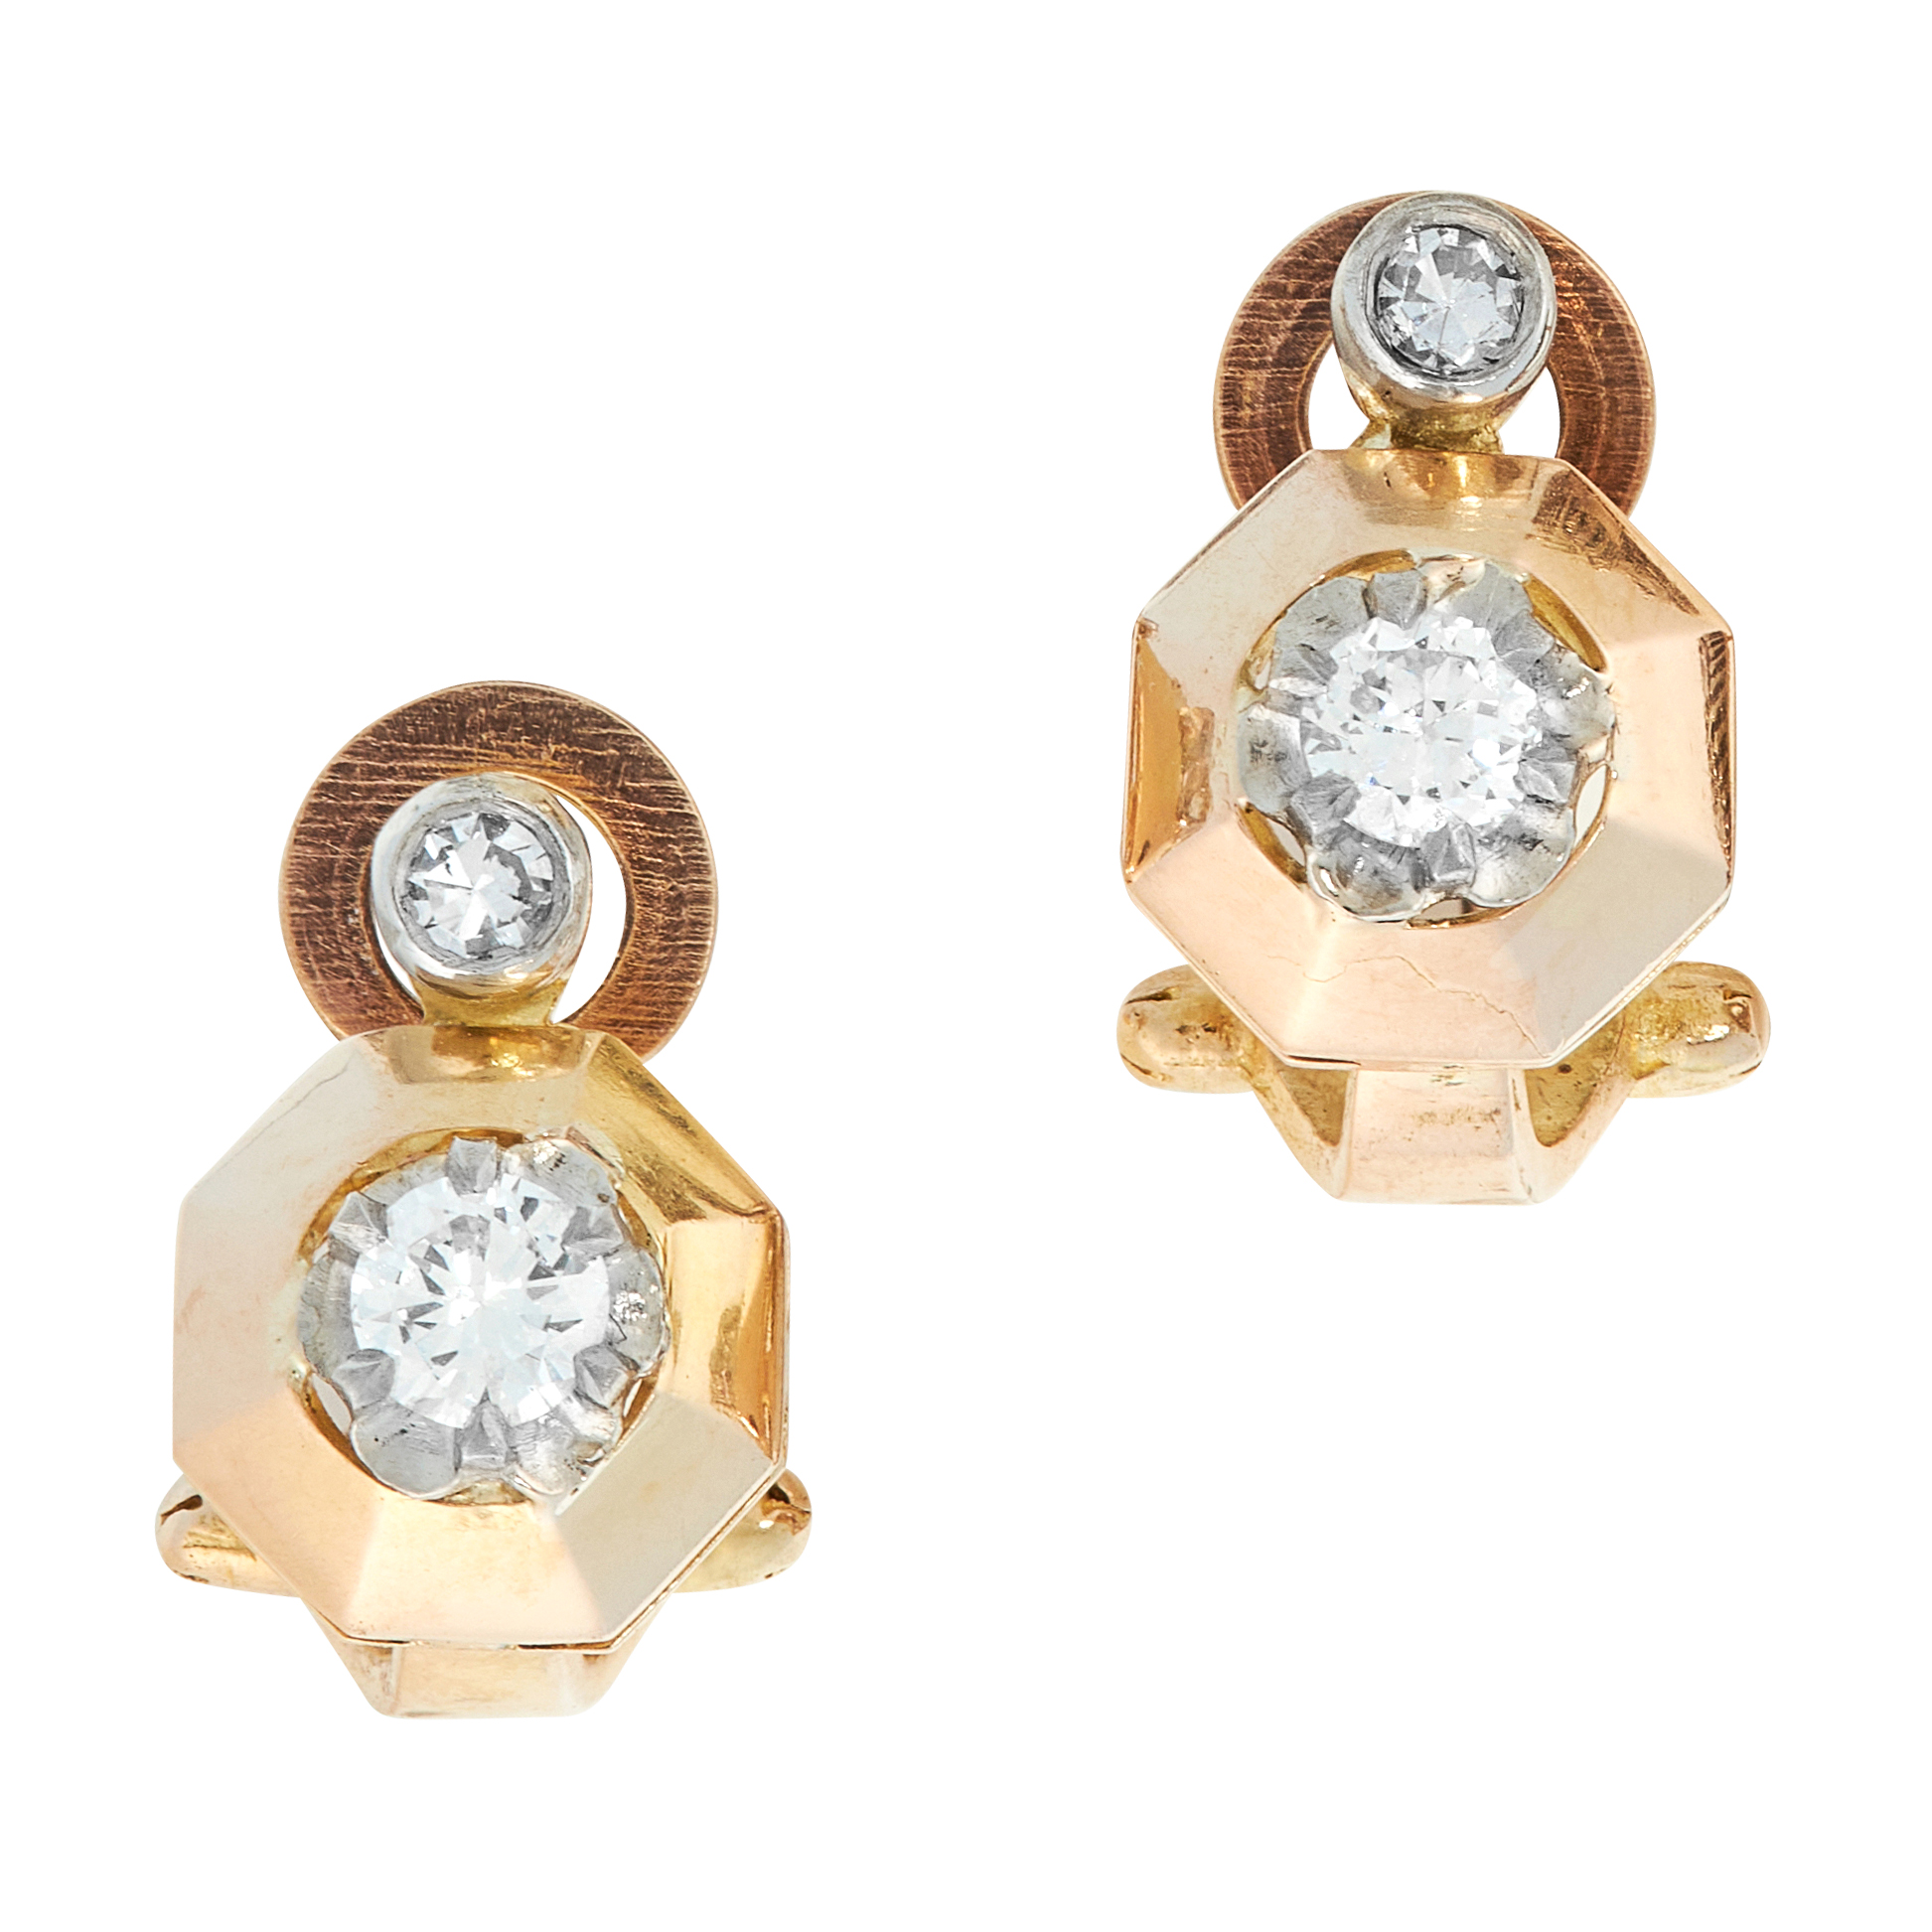 A PAIR OF VINTAGE DIAMOND STUD EARRINGS each set with a single cut diamond above a round cut diamond